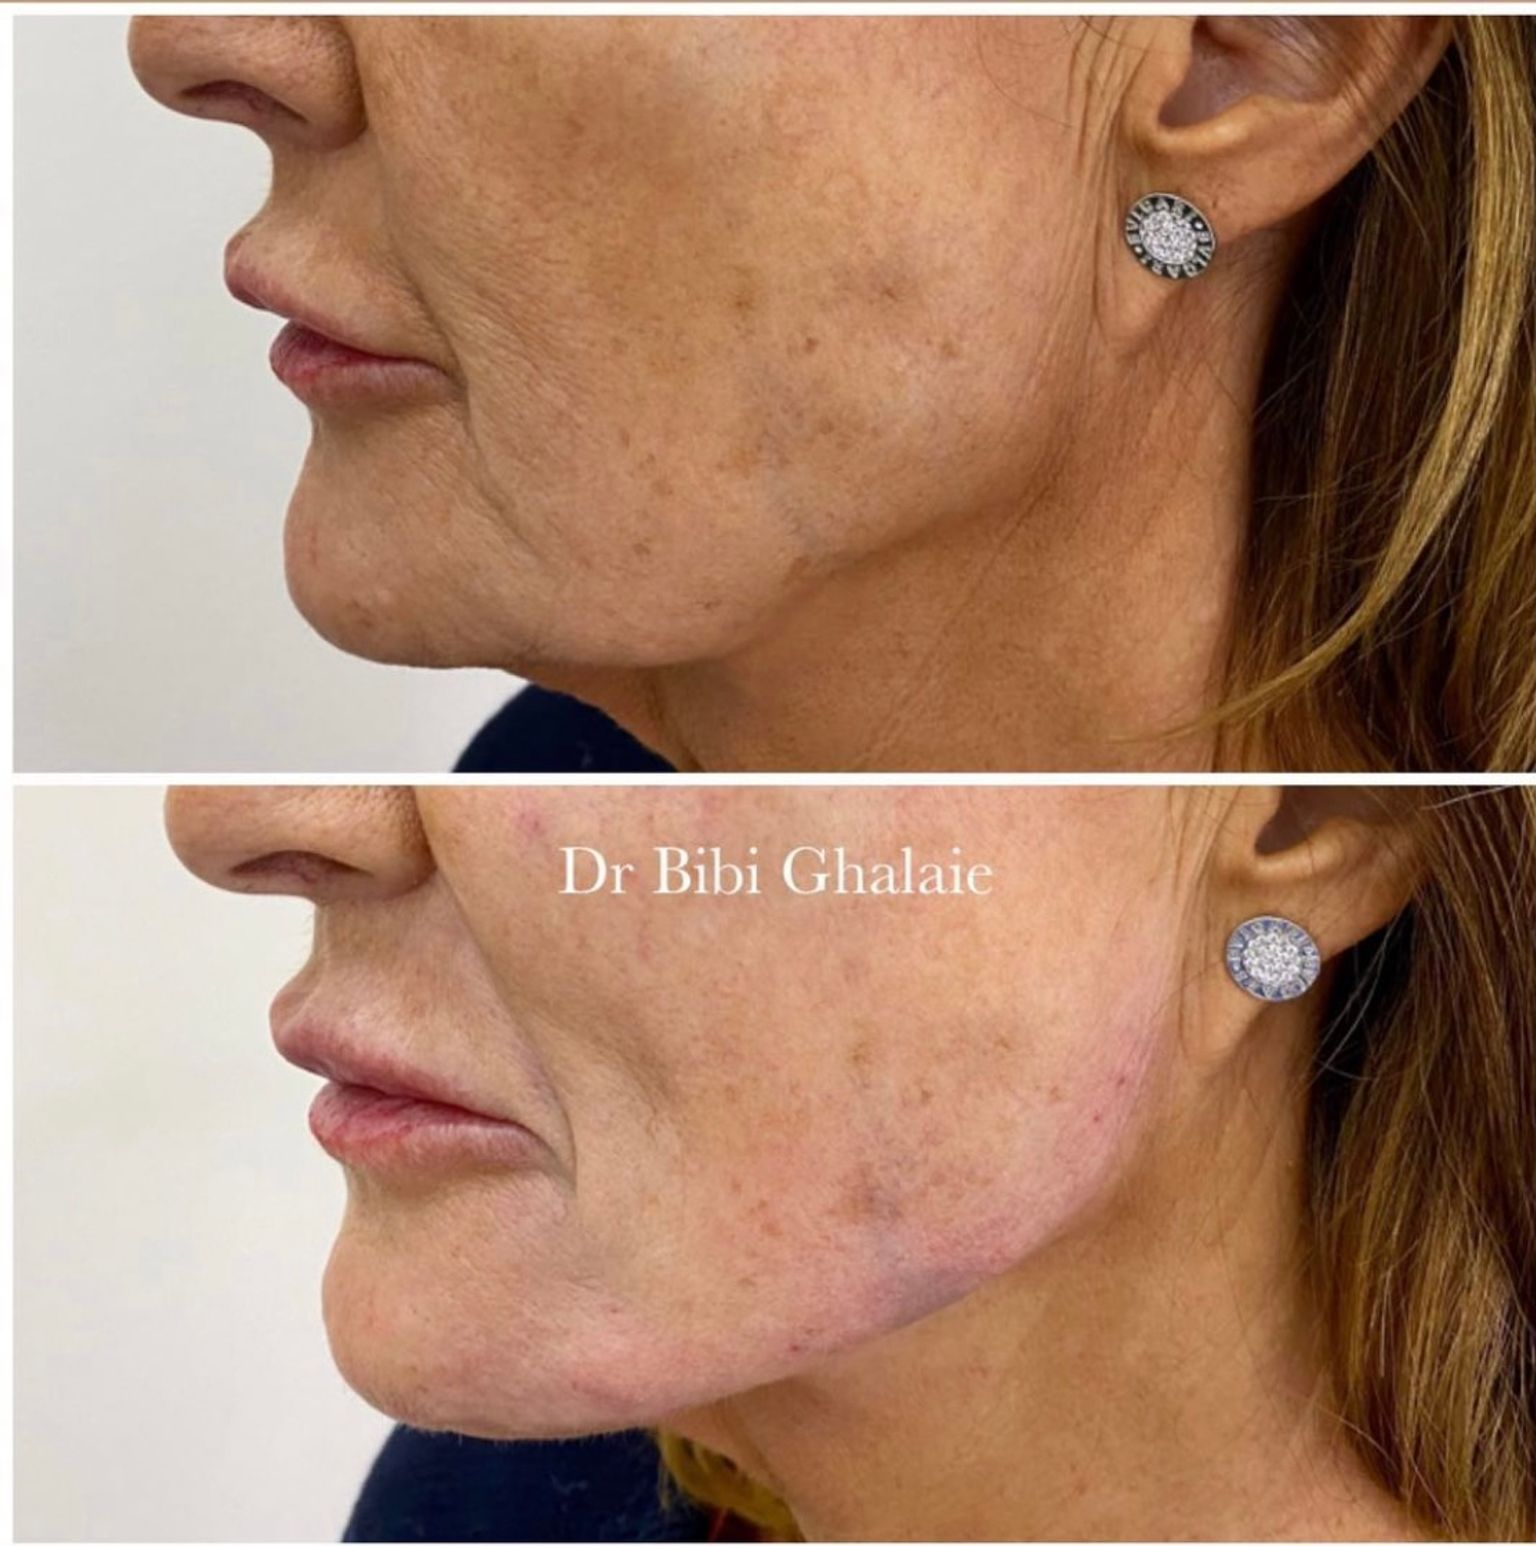 Dr Bibi - Jawline filler before and after - Glowday